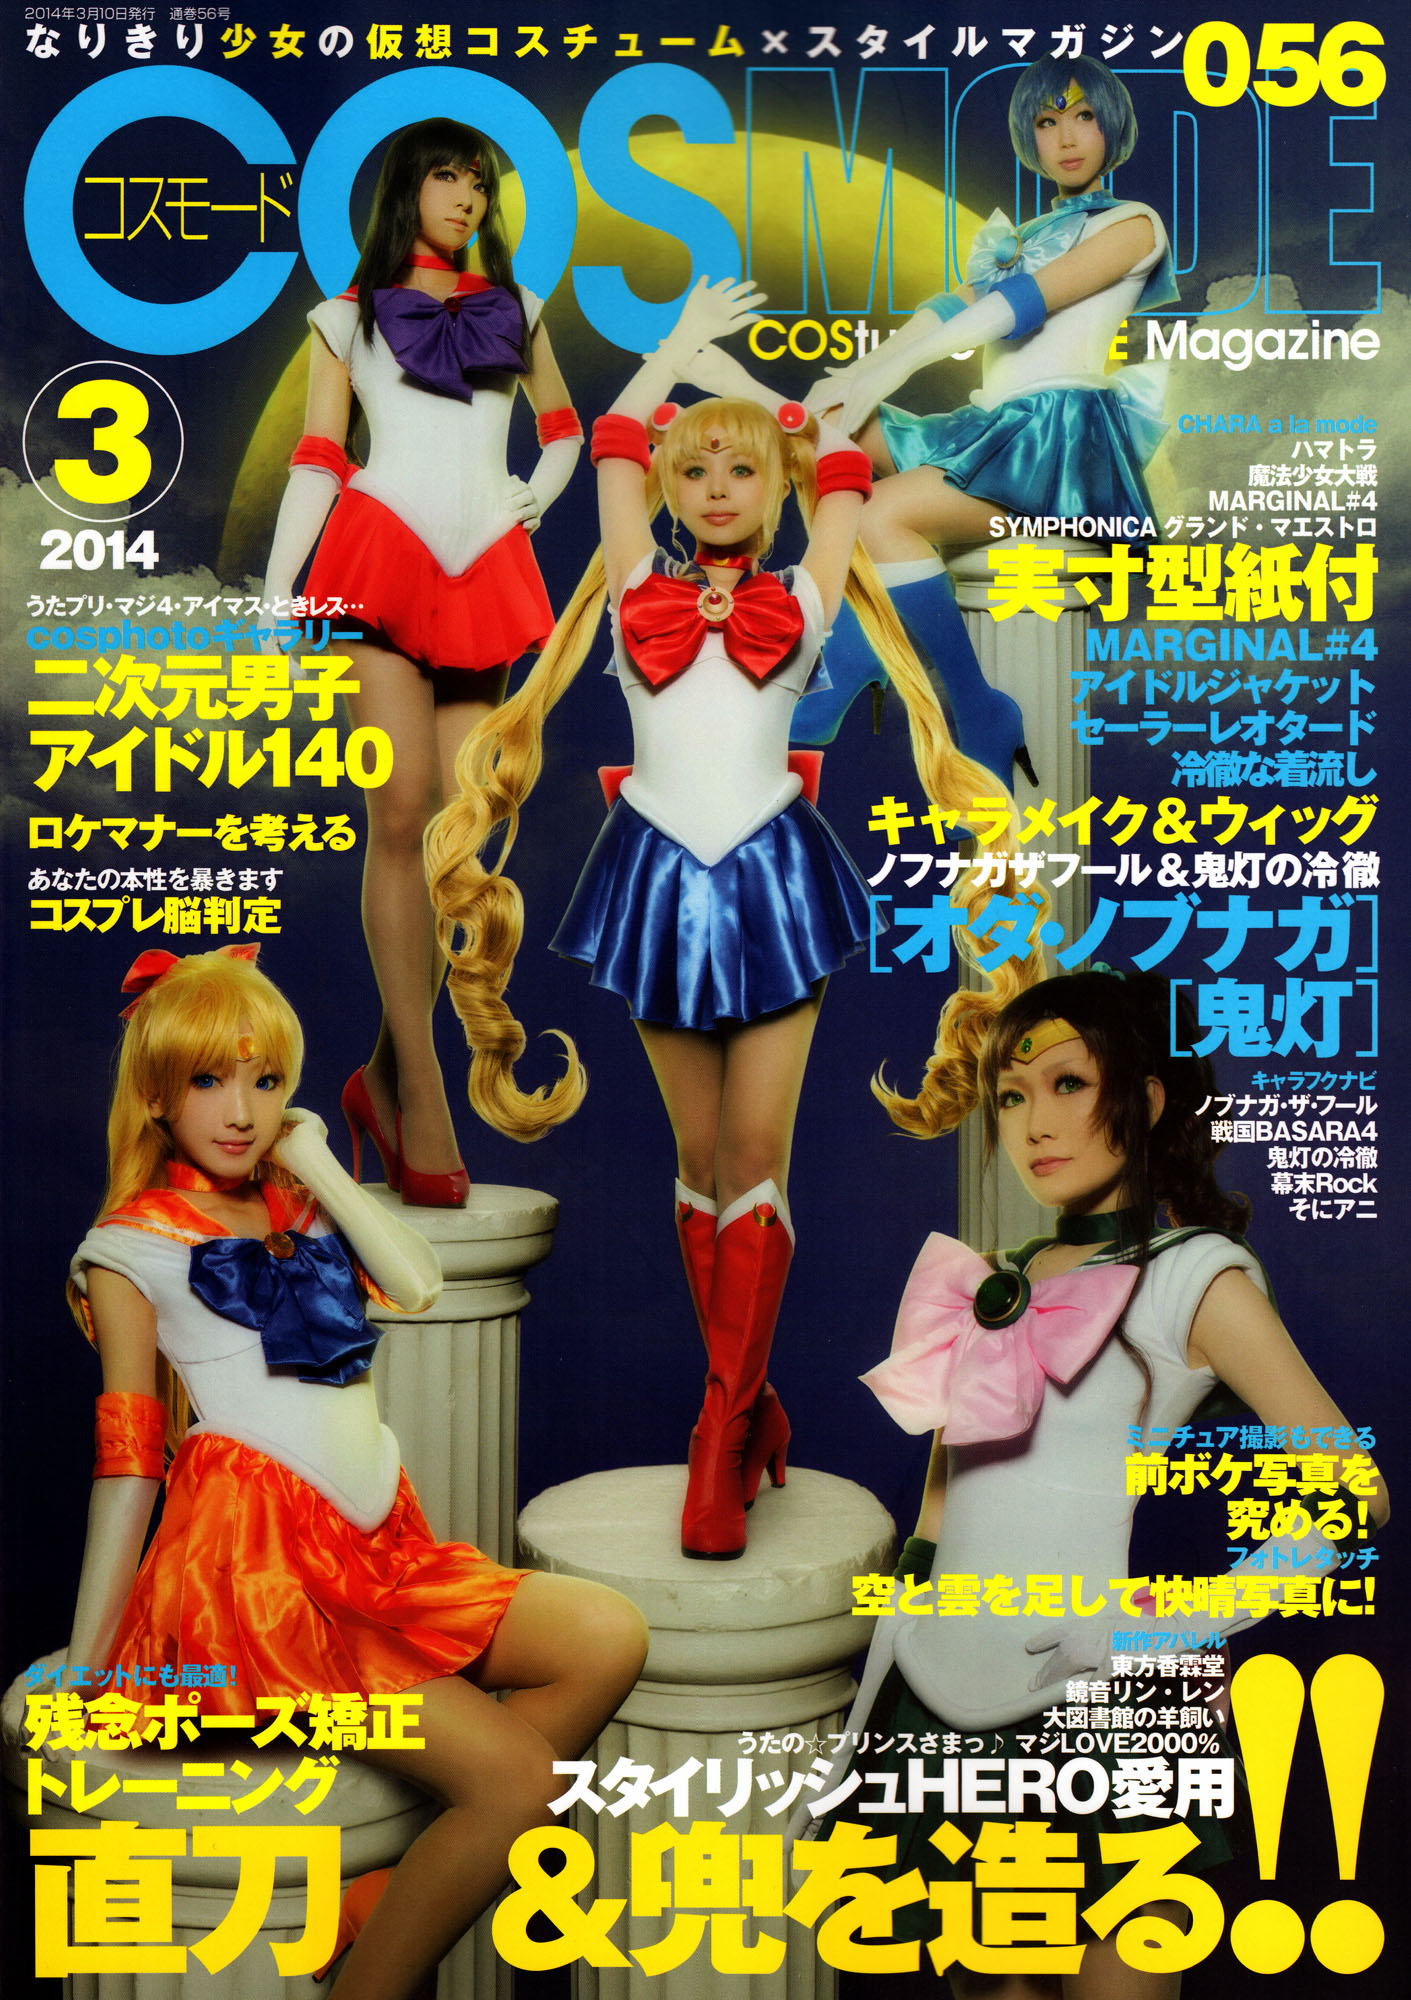 Sailor Moon Cosplay And Costume Patterns In Cosmode March